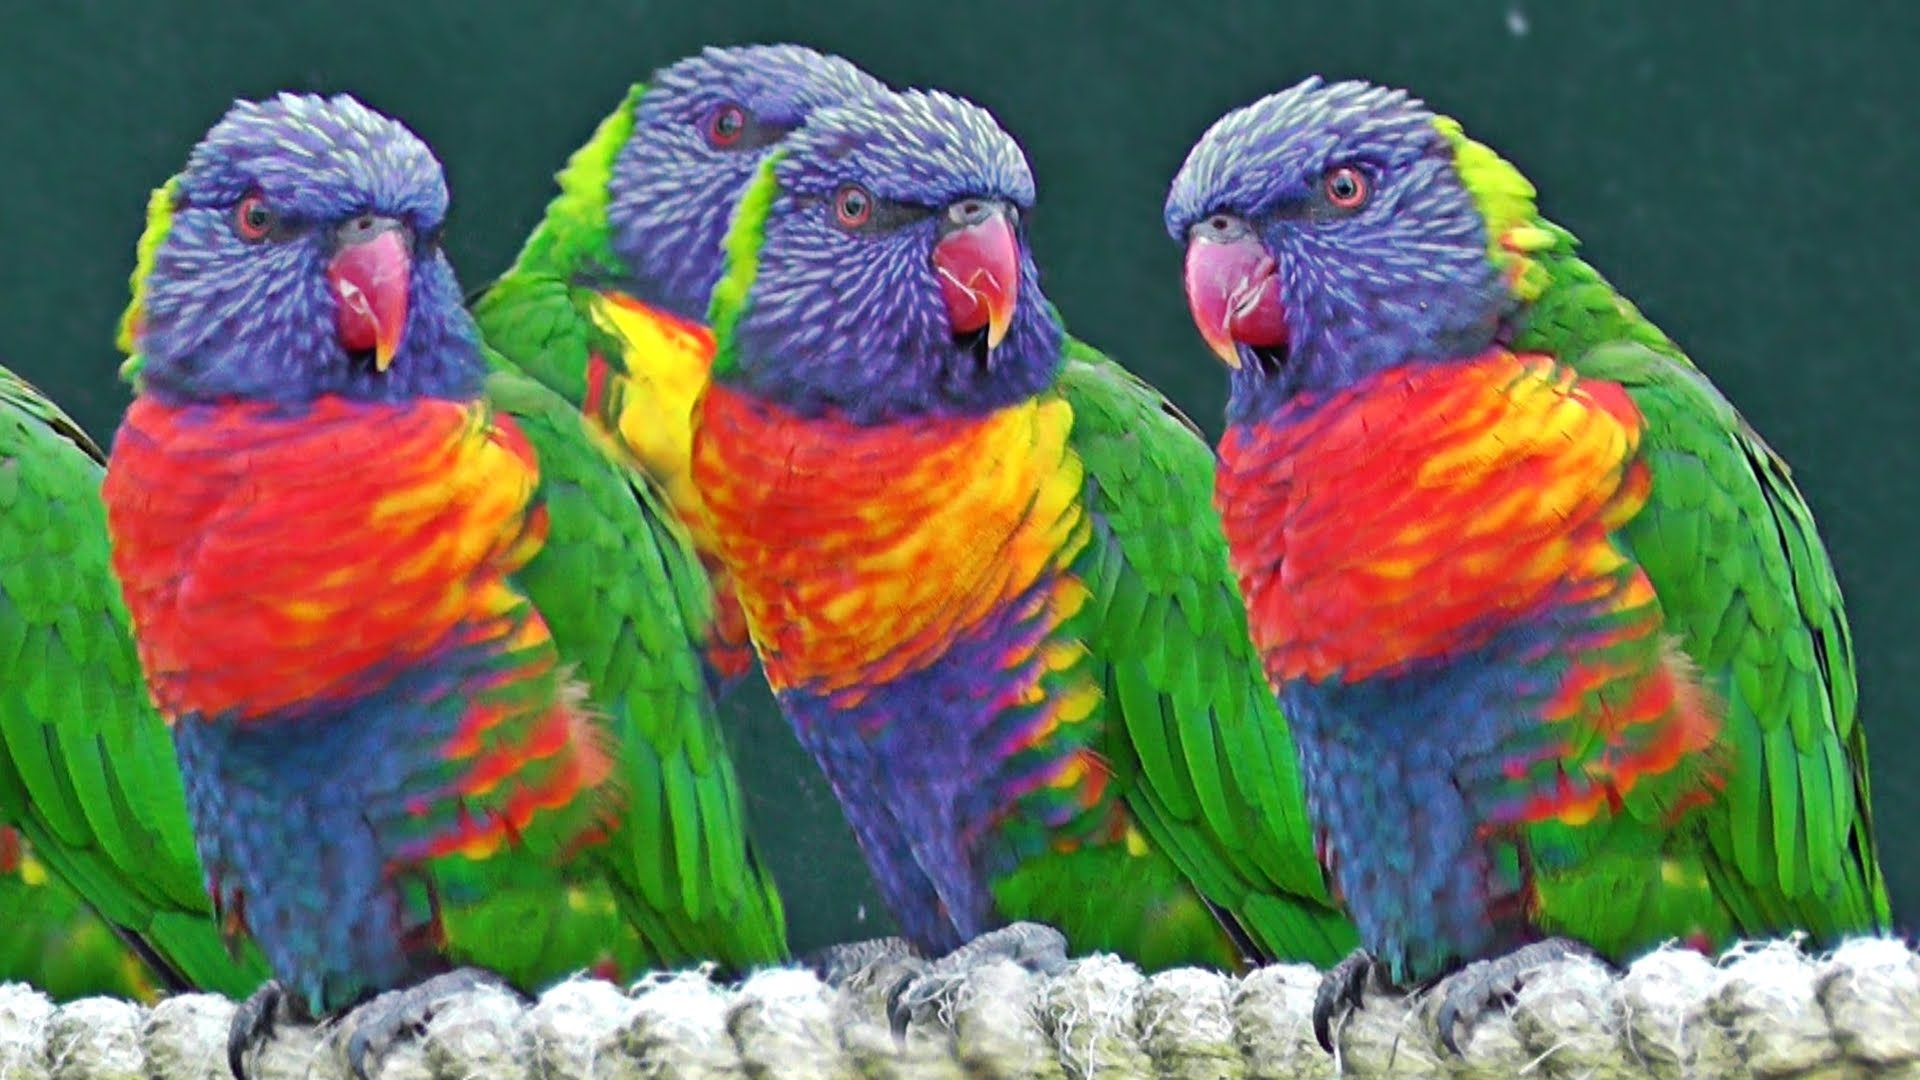 Lorikeets - Exotic Birds - YouTube